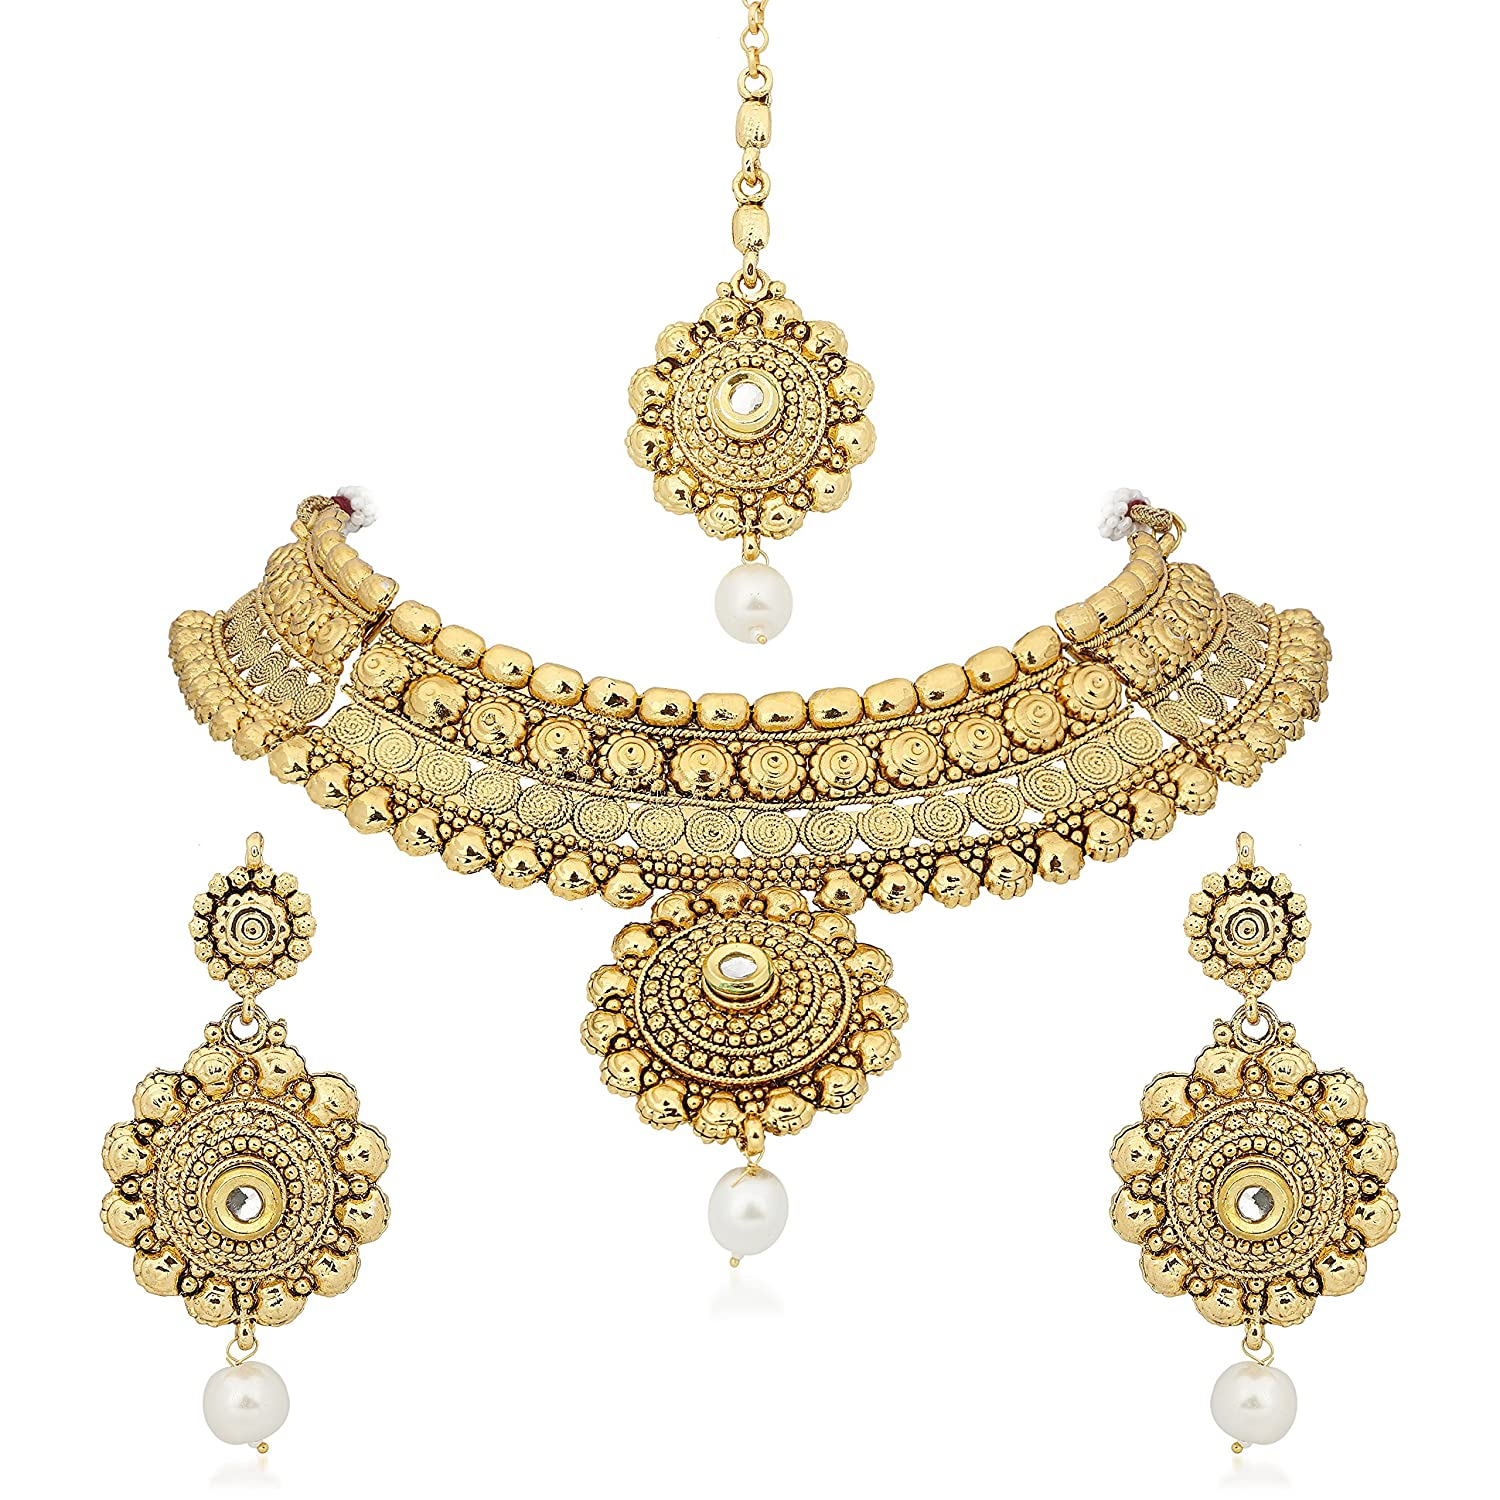 Luxury necklace set in gold best jewelry for New top jewelry nyc prices